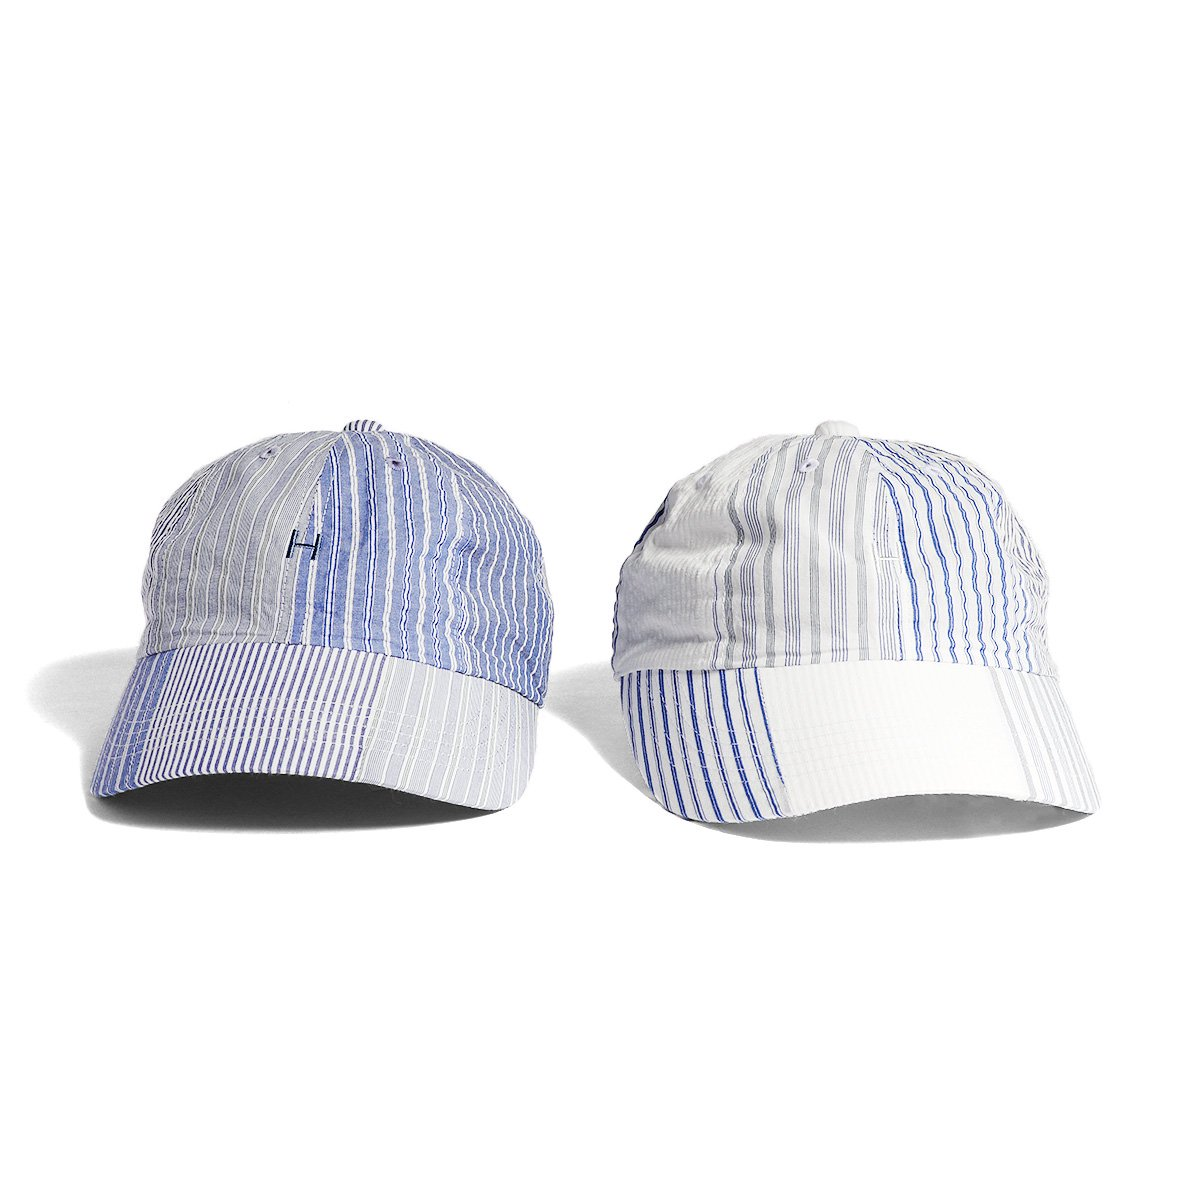 HICOSAKA(ヒコサカ) CRAZY 8PANEL WIDE VISOR CAP